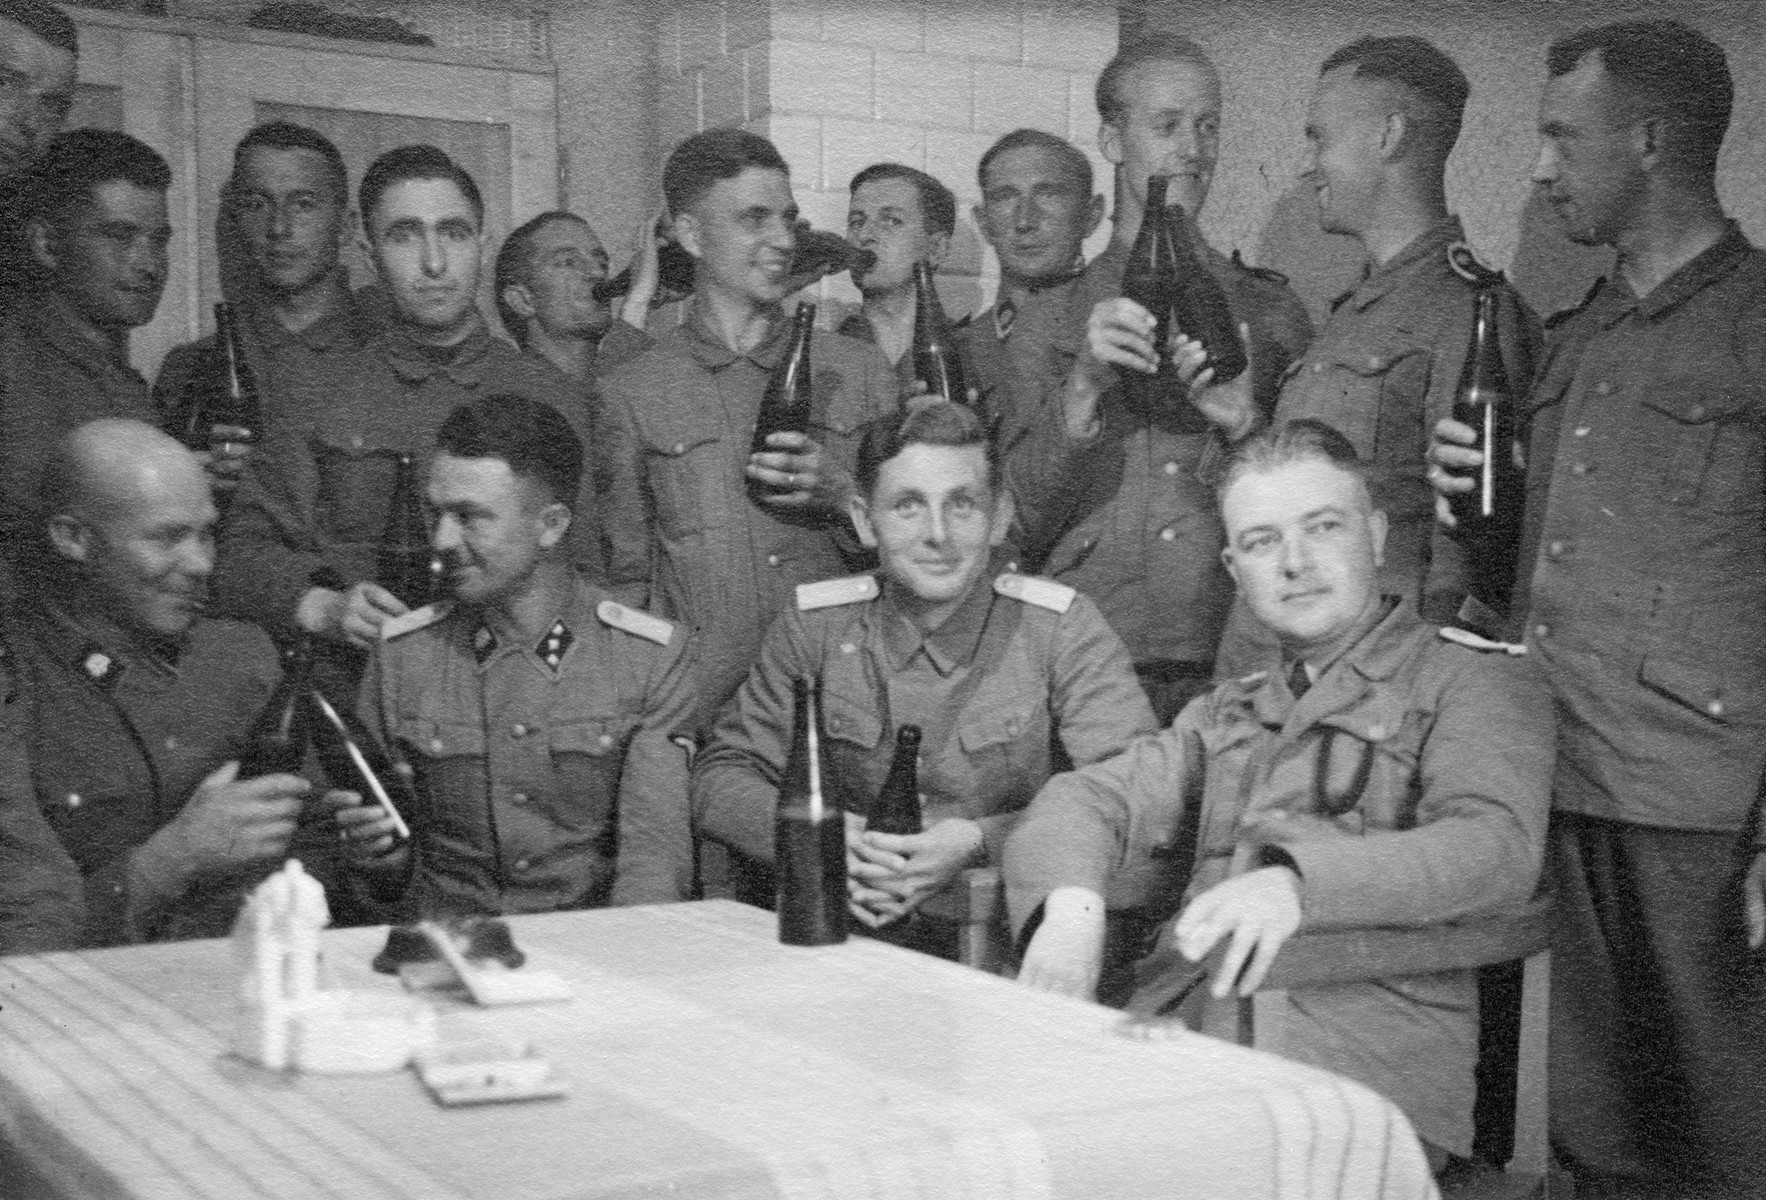 Members of the Waffen-SS enjoy a drink in occupied Poland.